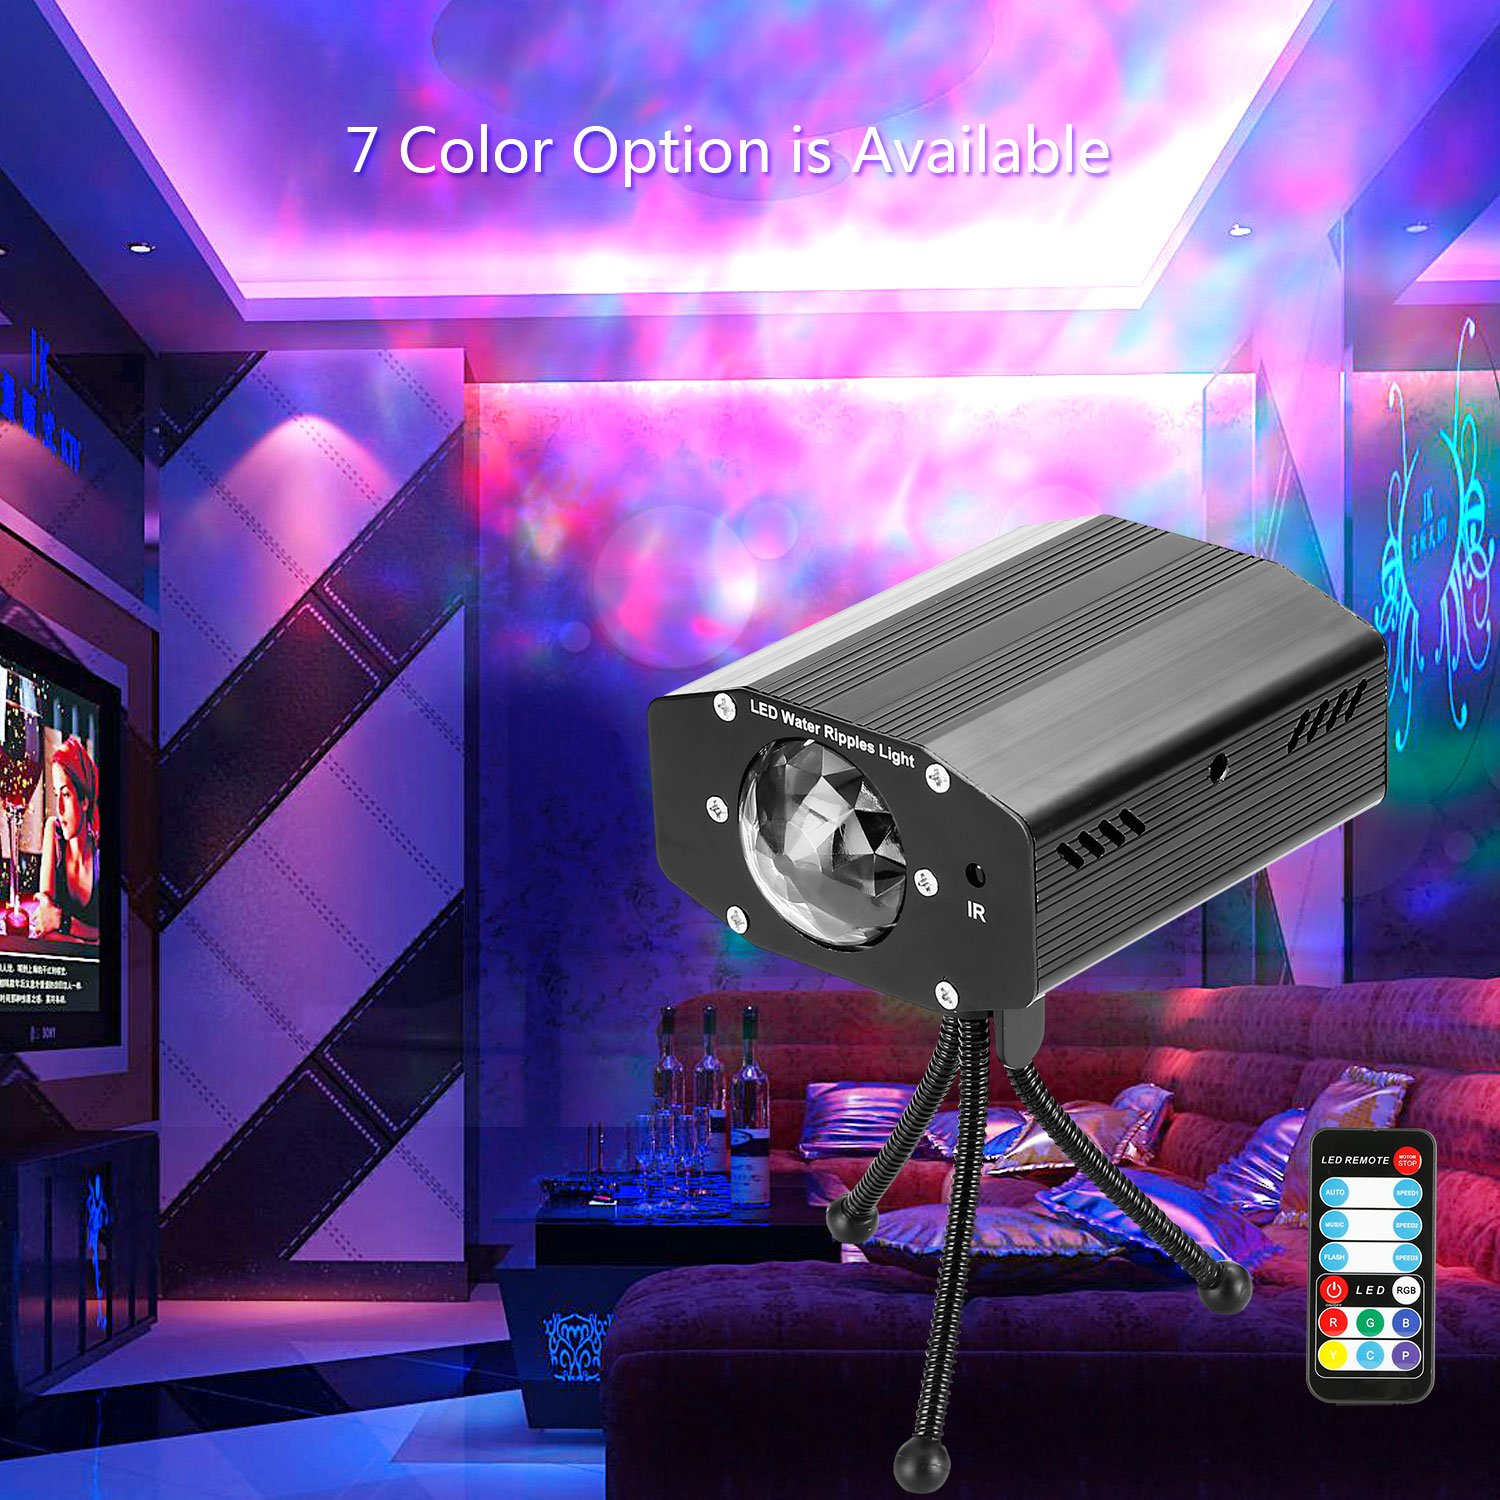 Portable Dj Party Lights 7 Color Water Waves Ripple Dance Stage Mini Laser Light Multicolor Projector Ampamp Tripod Blue Lighting Sound Music Activated